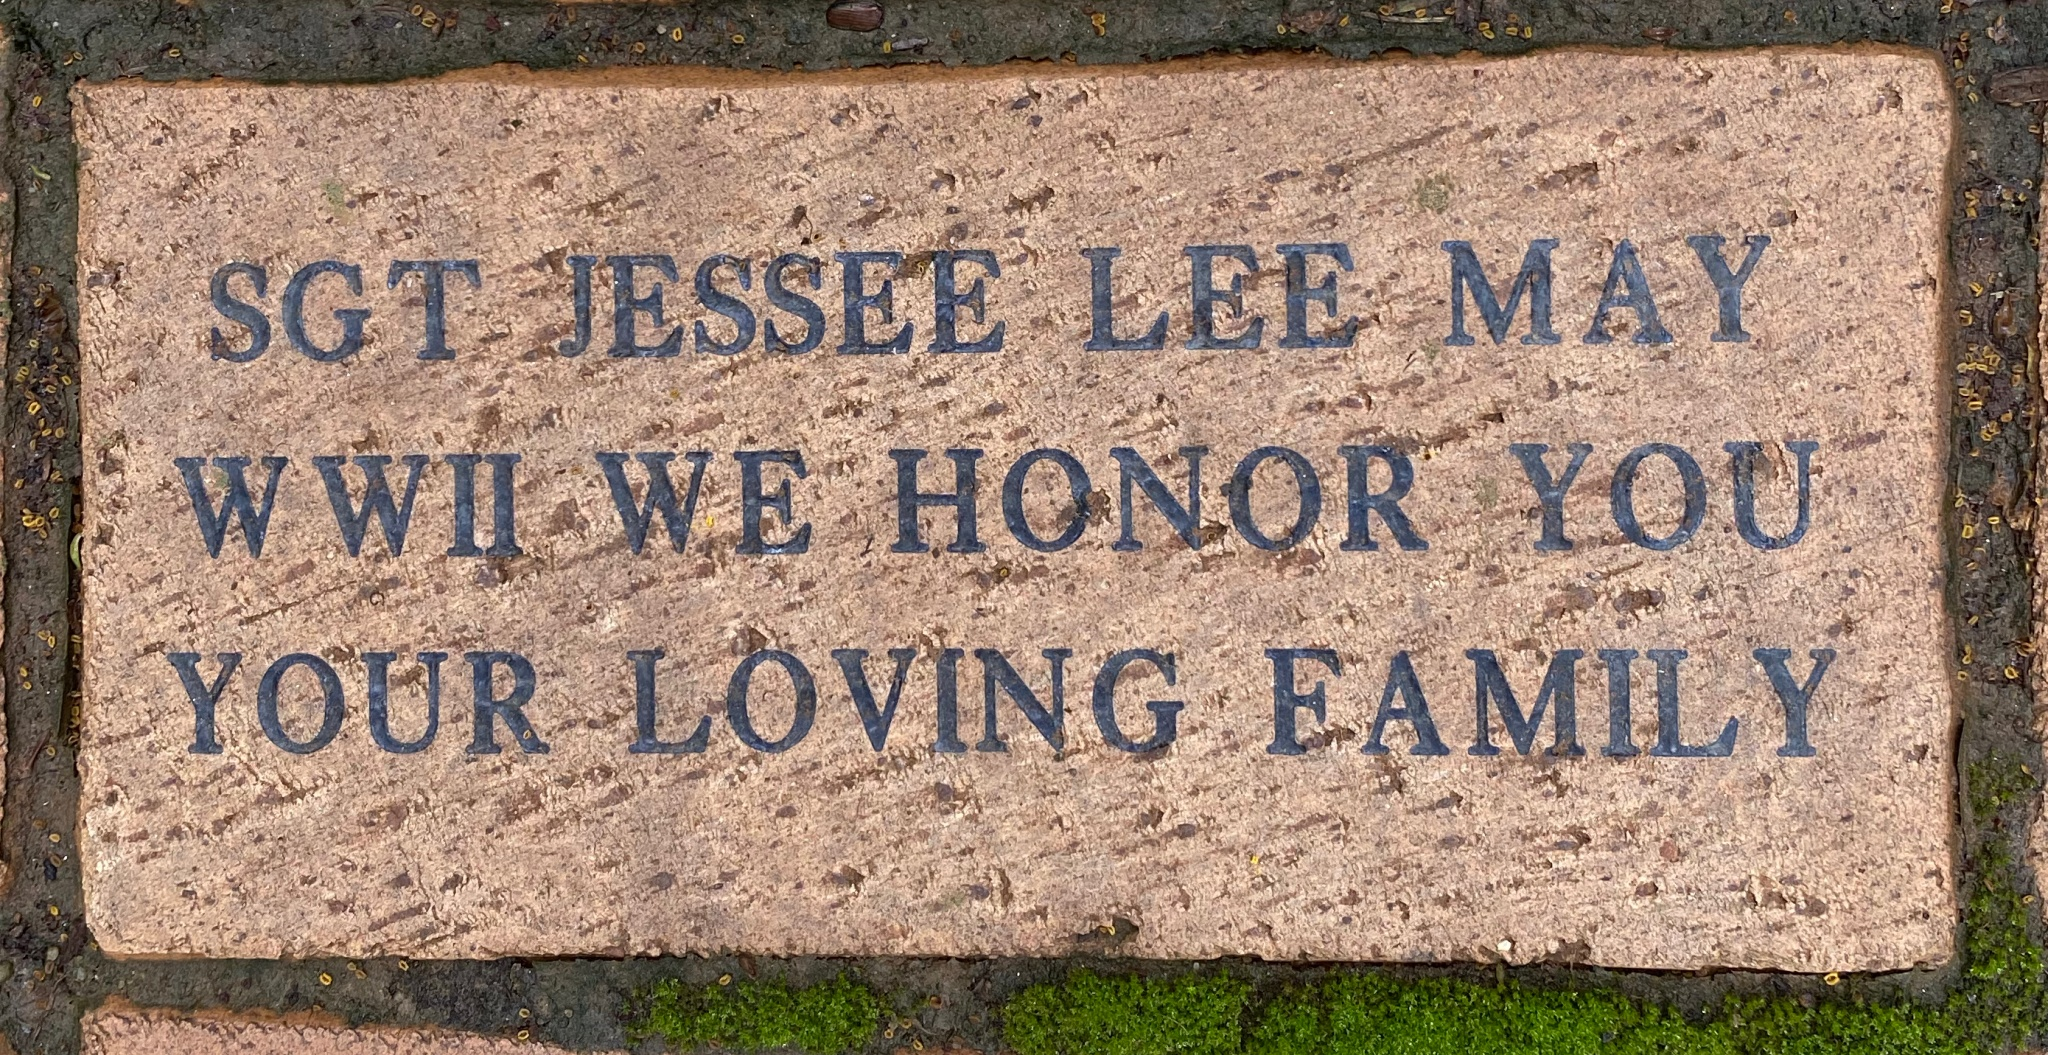 SGT JESSEE LEE MAY WWII WE HONOR YOU YOUR LOVING FAMILY